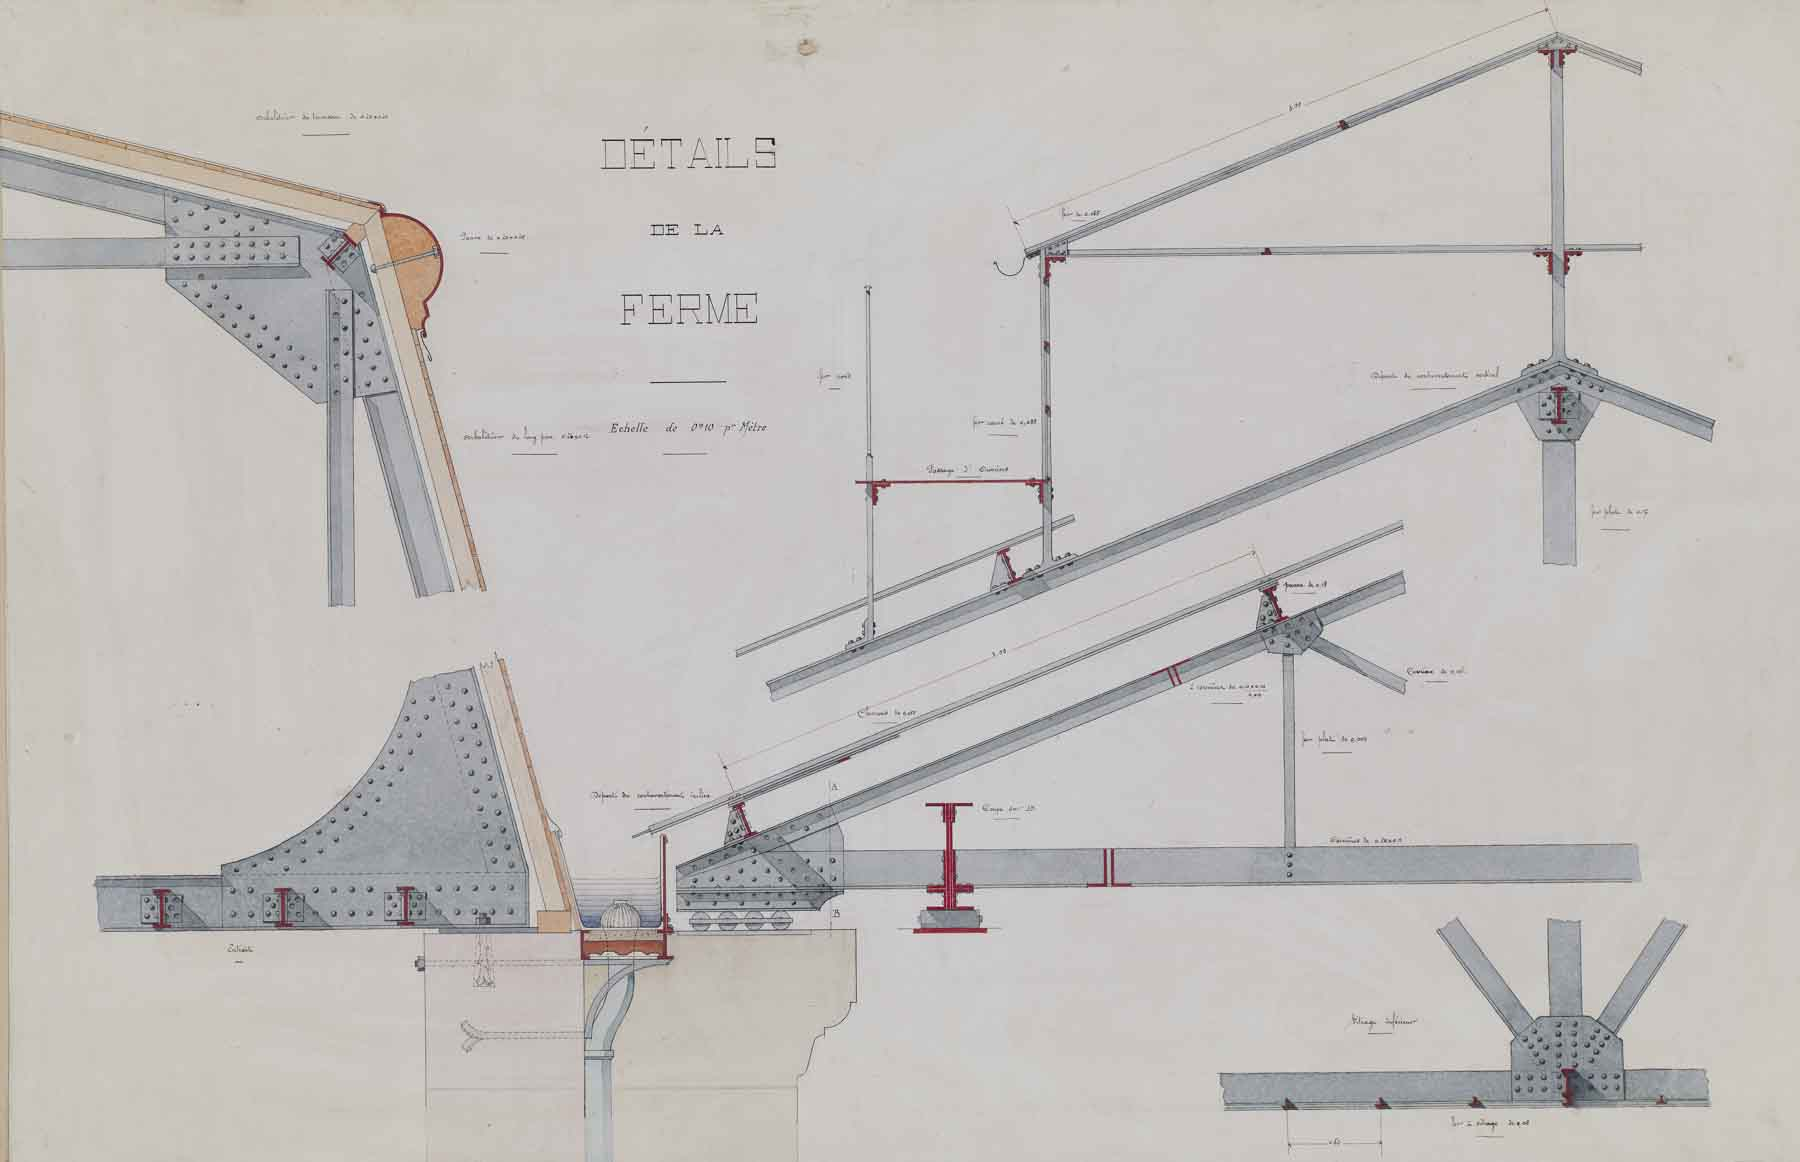 """Jules-Germain Olivier, Ironwork: Details of the  Roof Truss,c. 1890-1900, ink and watercolor on paper,33 1/4 x 44 3/4"""" framed"""